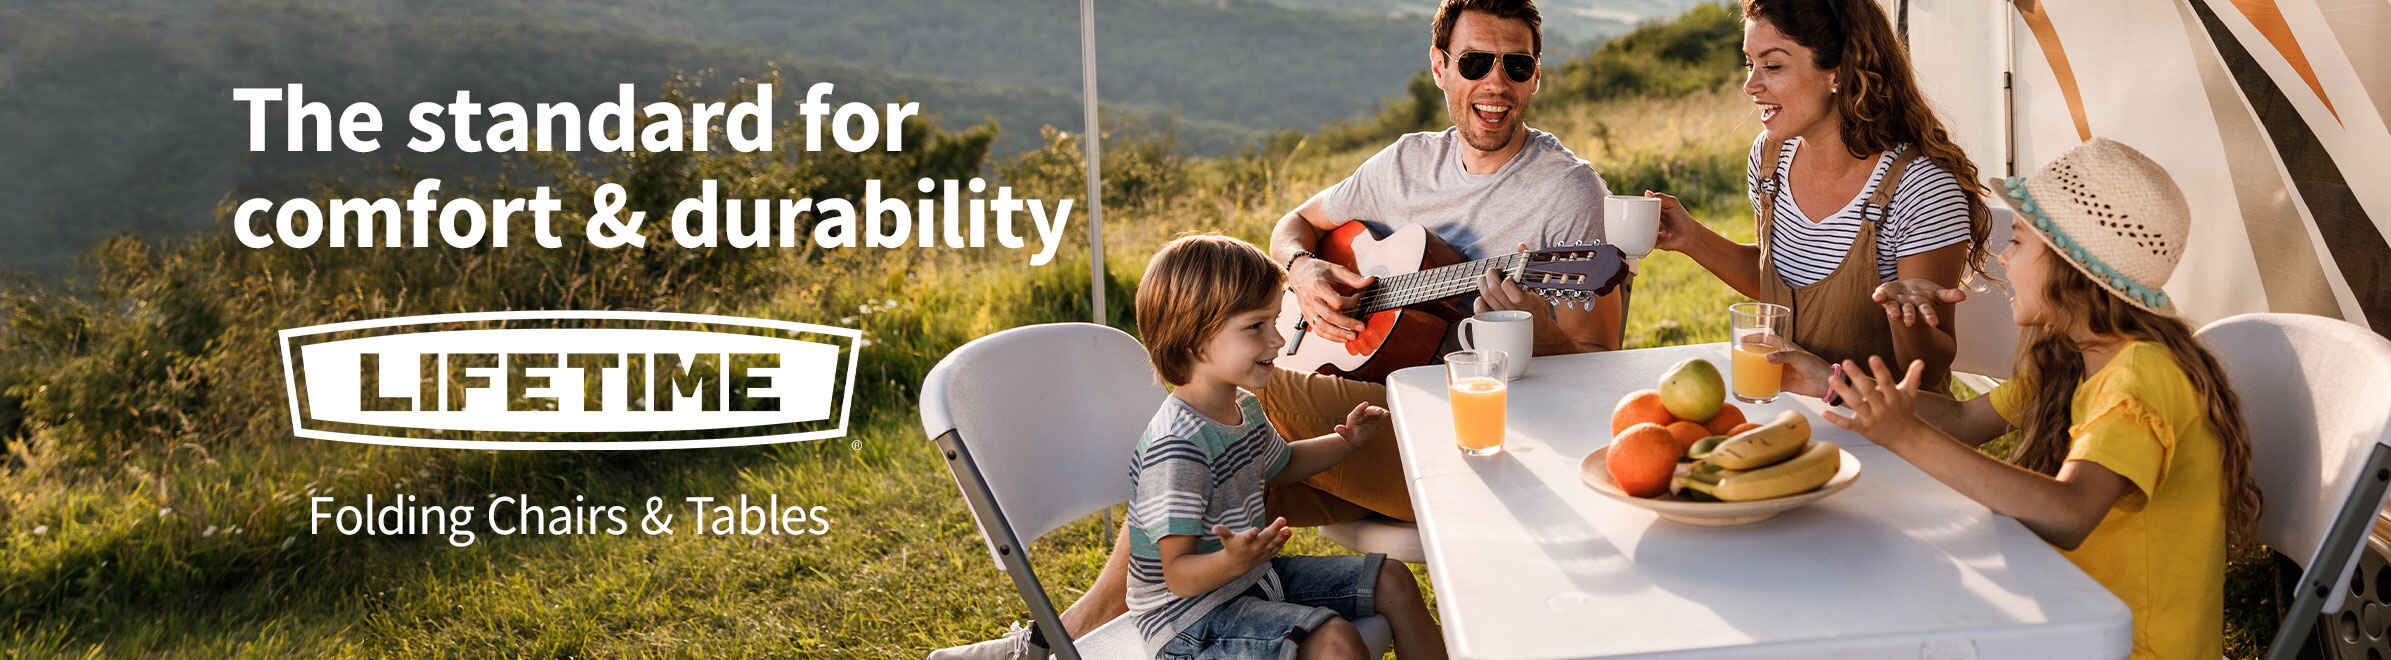 Lifetime Folding Chairs & Tables